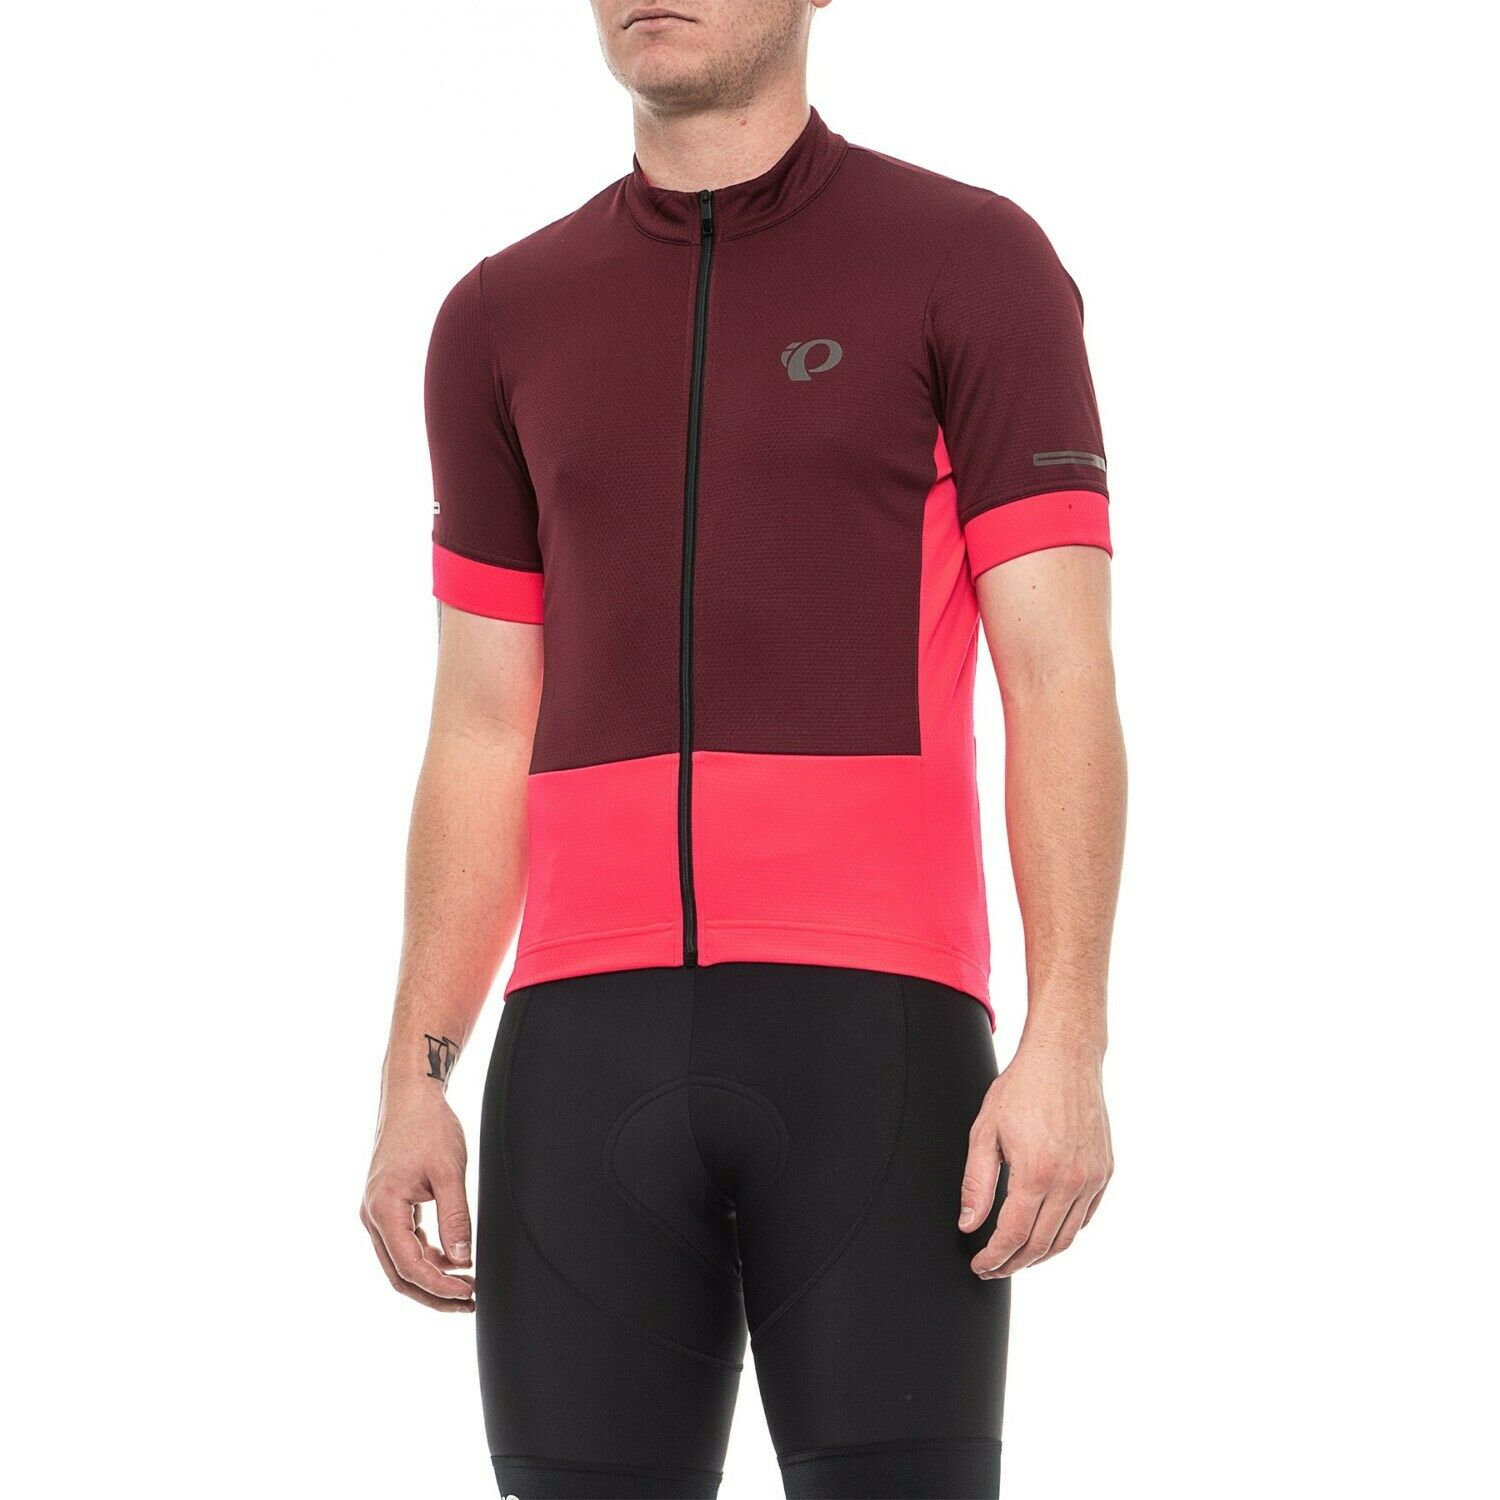 Port//Atomic Red PEARL IZUMI Men/'s Elite Escape Cycling Jersey NWT SZ 2XL